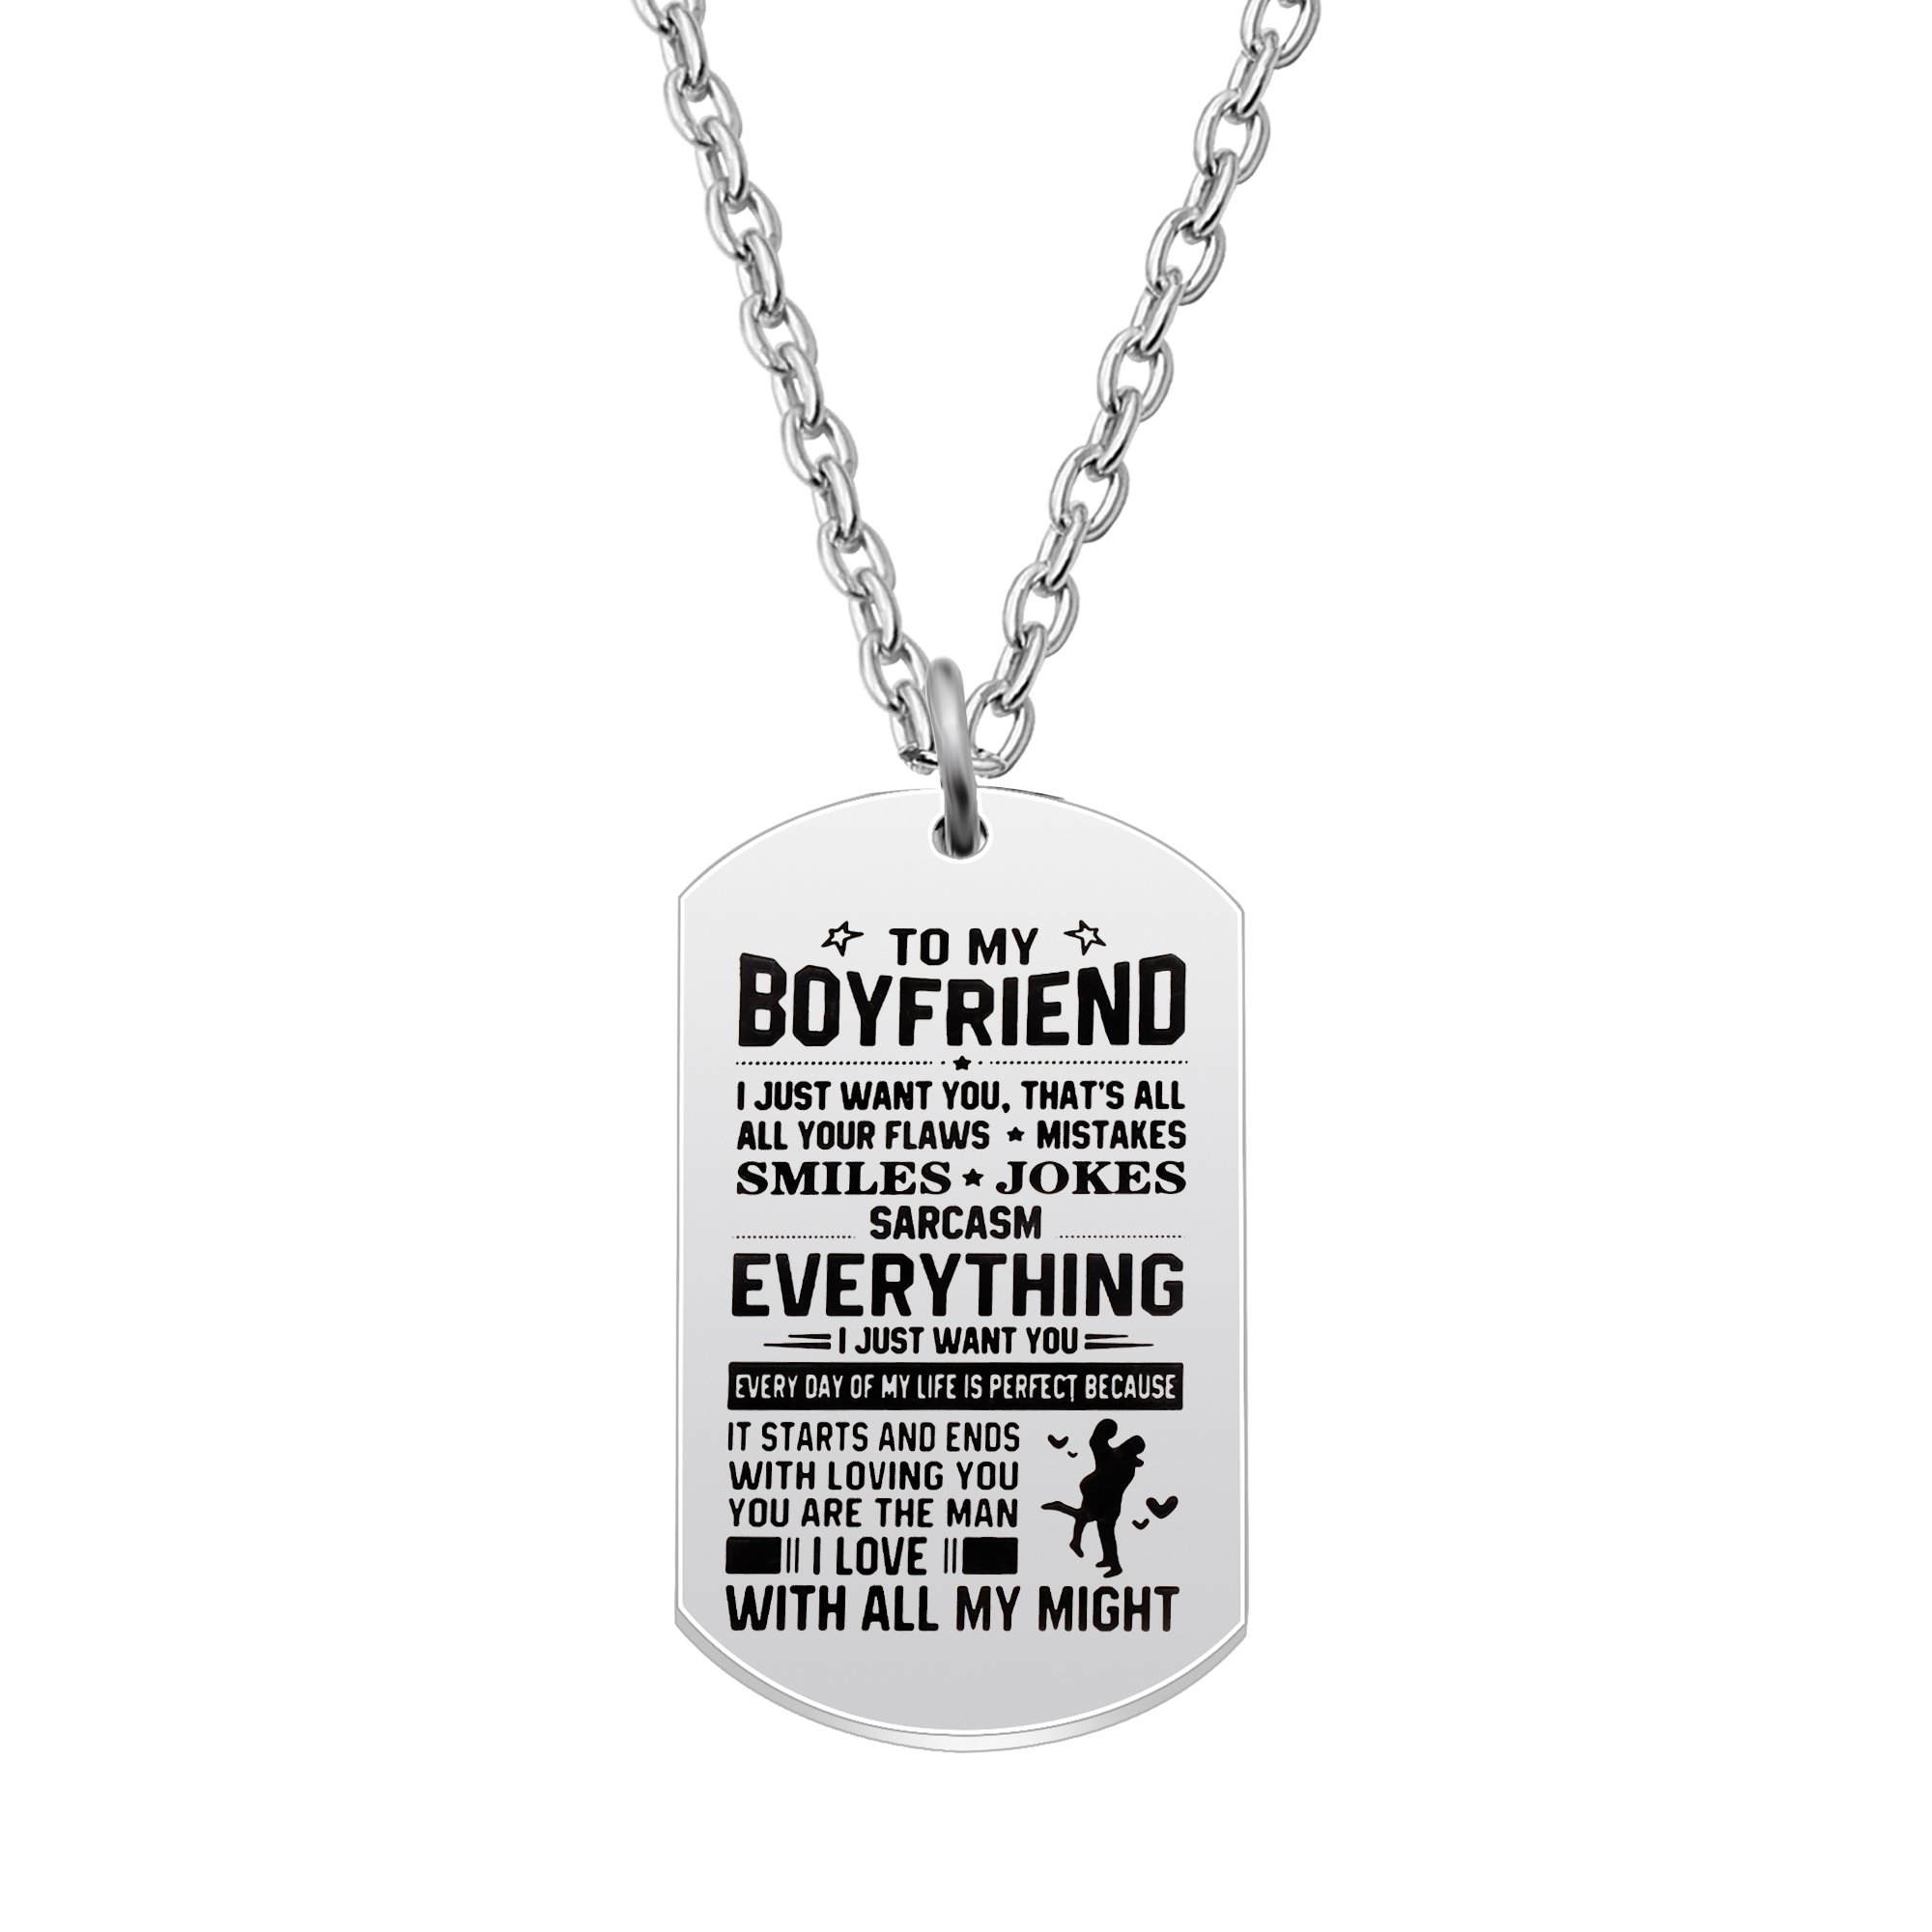 AGR8T Pendant Necklace Valentine Boyfriend Gift From Girlfriend - To My Boyfriend Everything I Just Want You by AGR8T (Image #1)